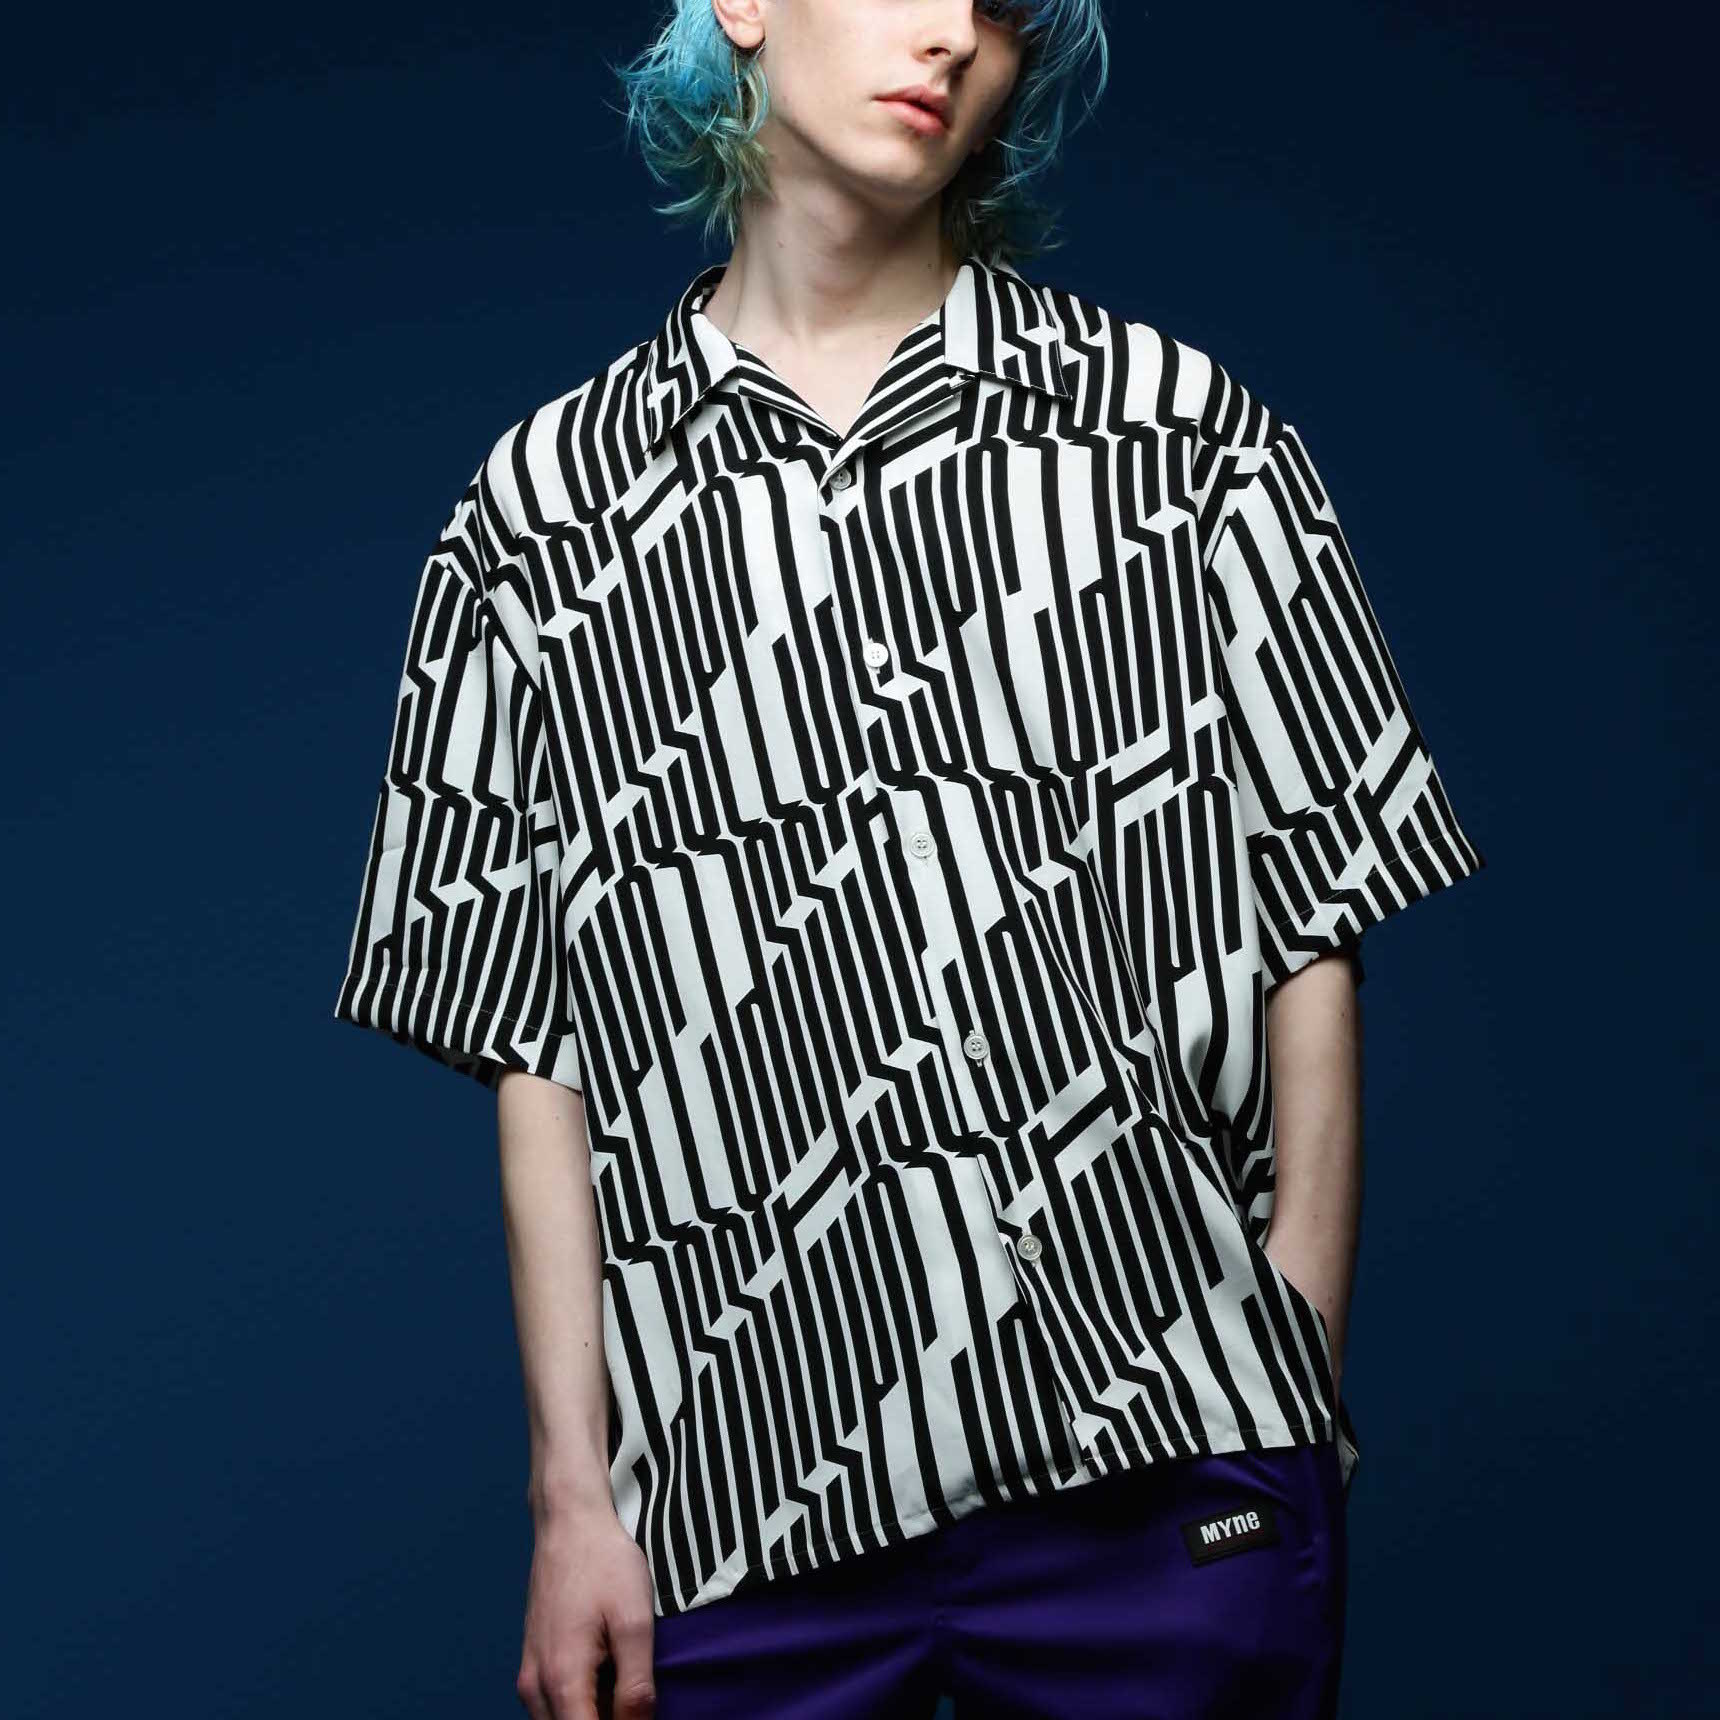 JAZZ IT UP HALF SHIRT / WHITE - 画像3